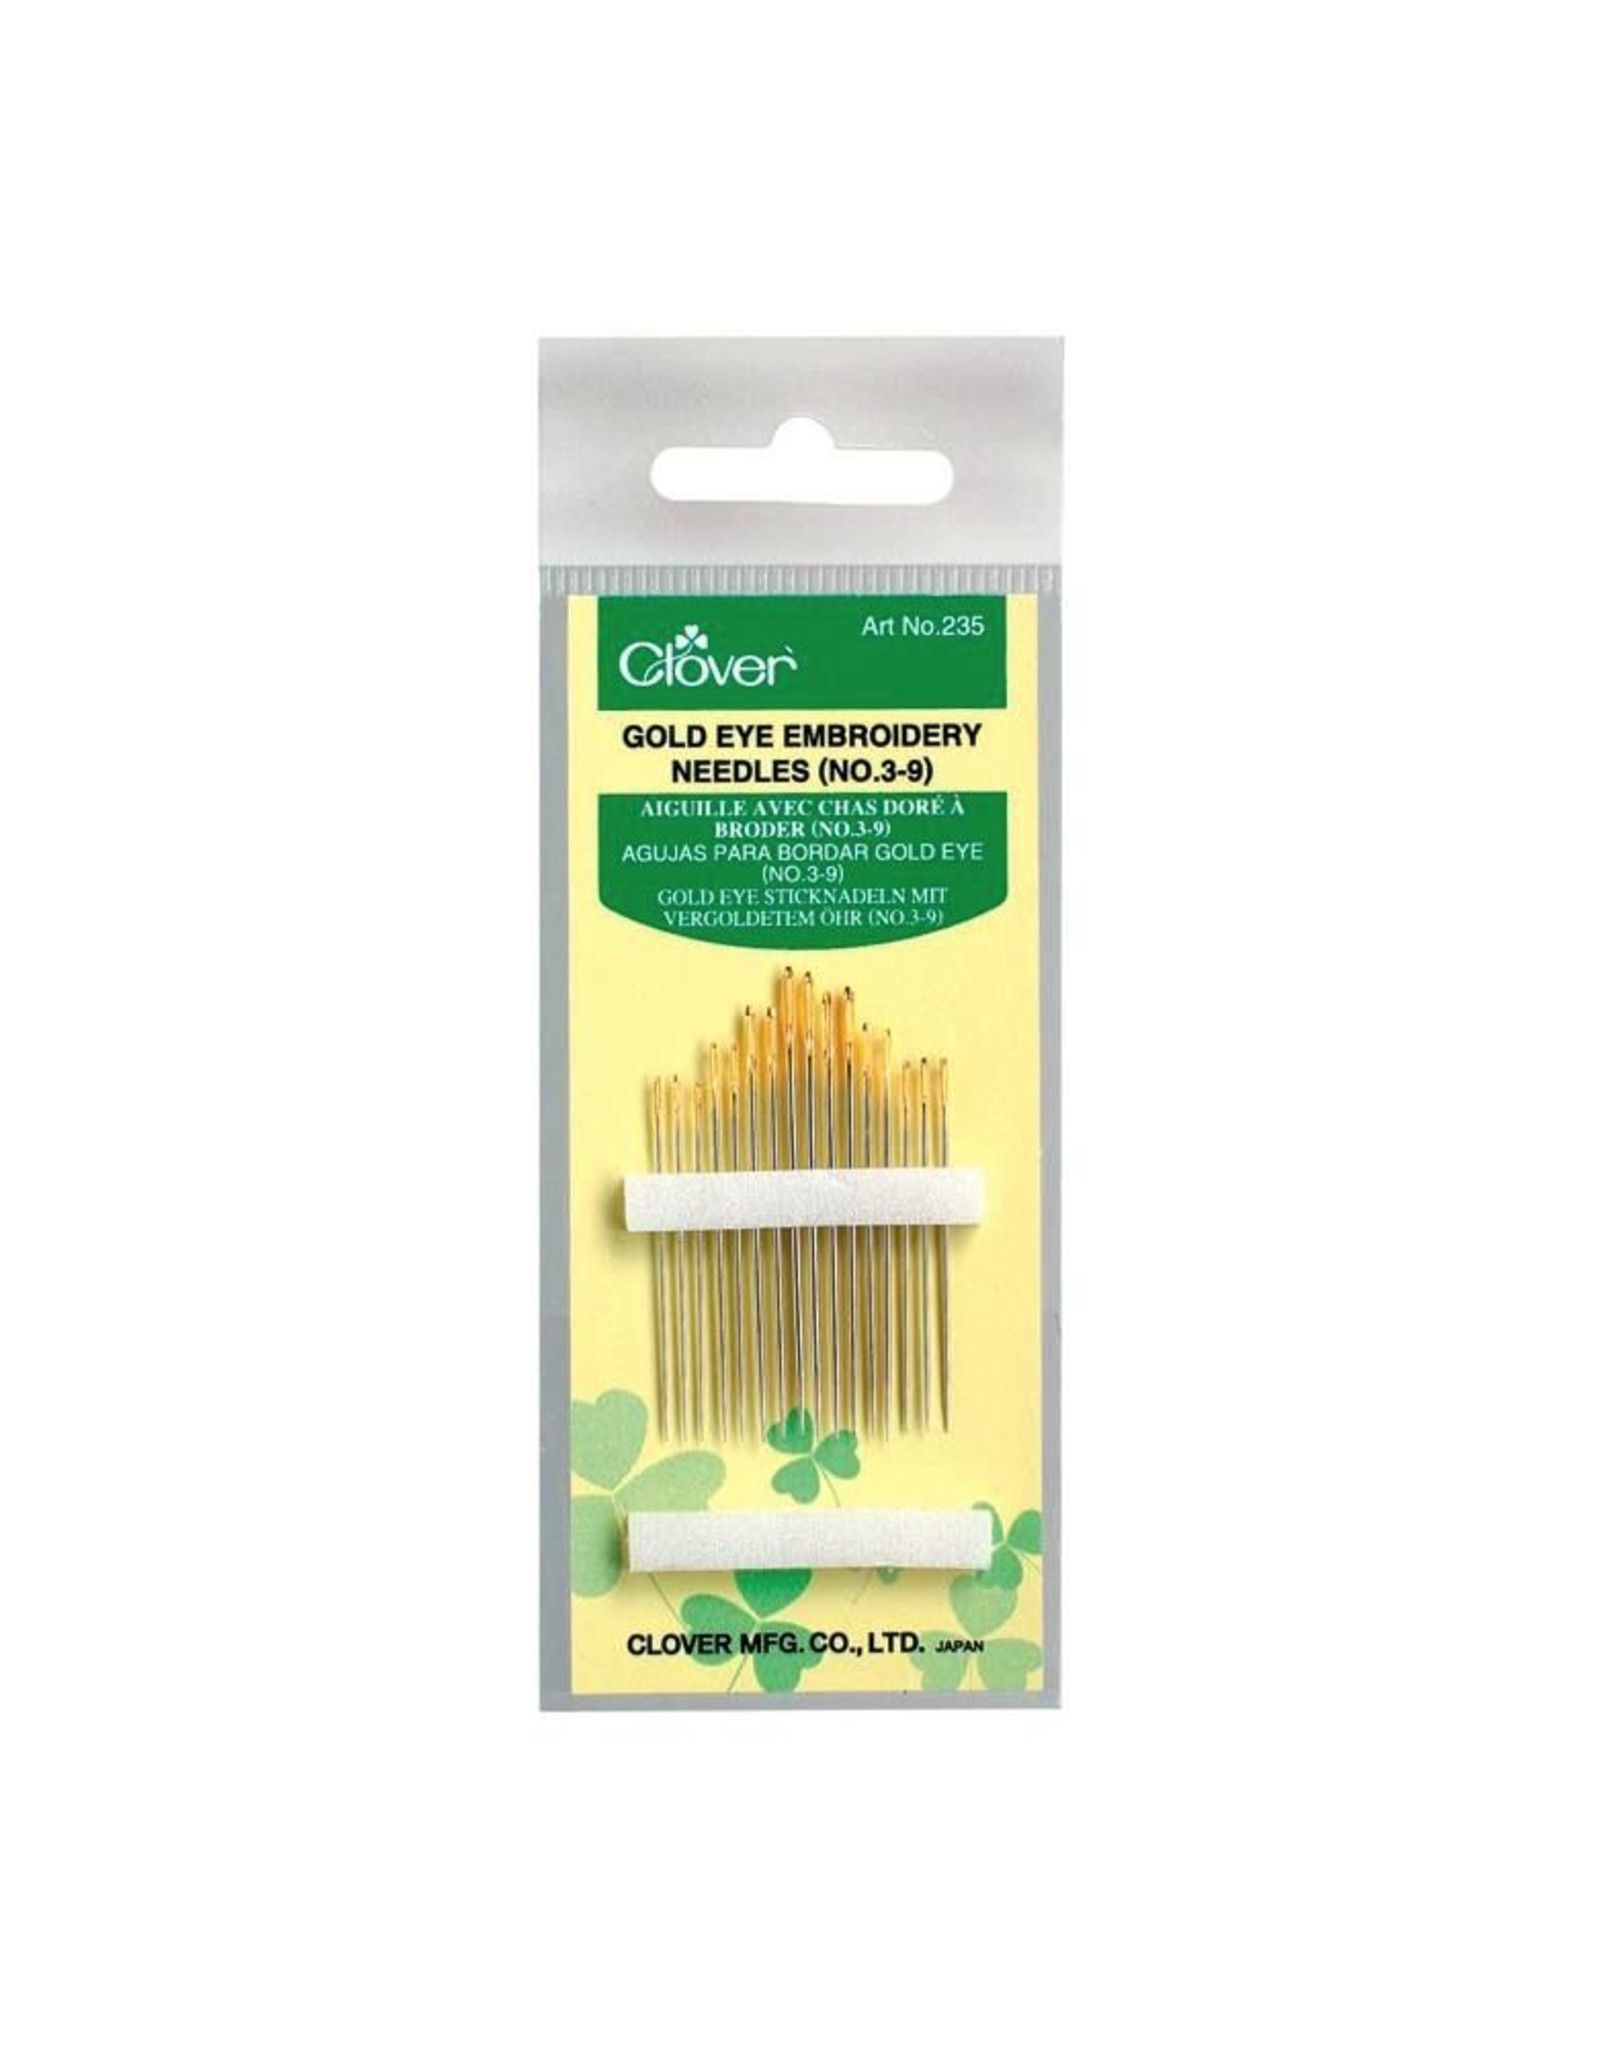 Clover Gold Eye Embroidery Needles